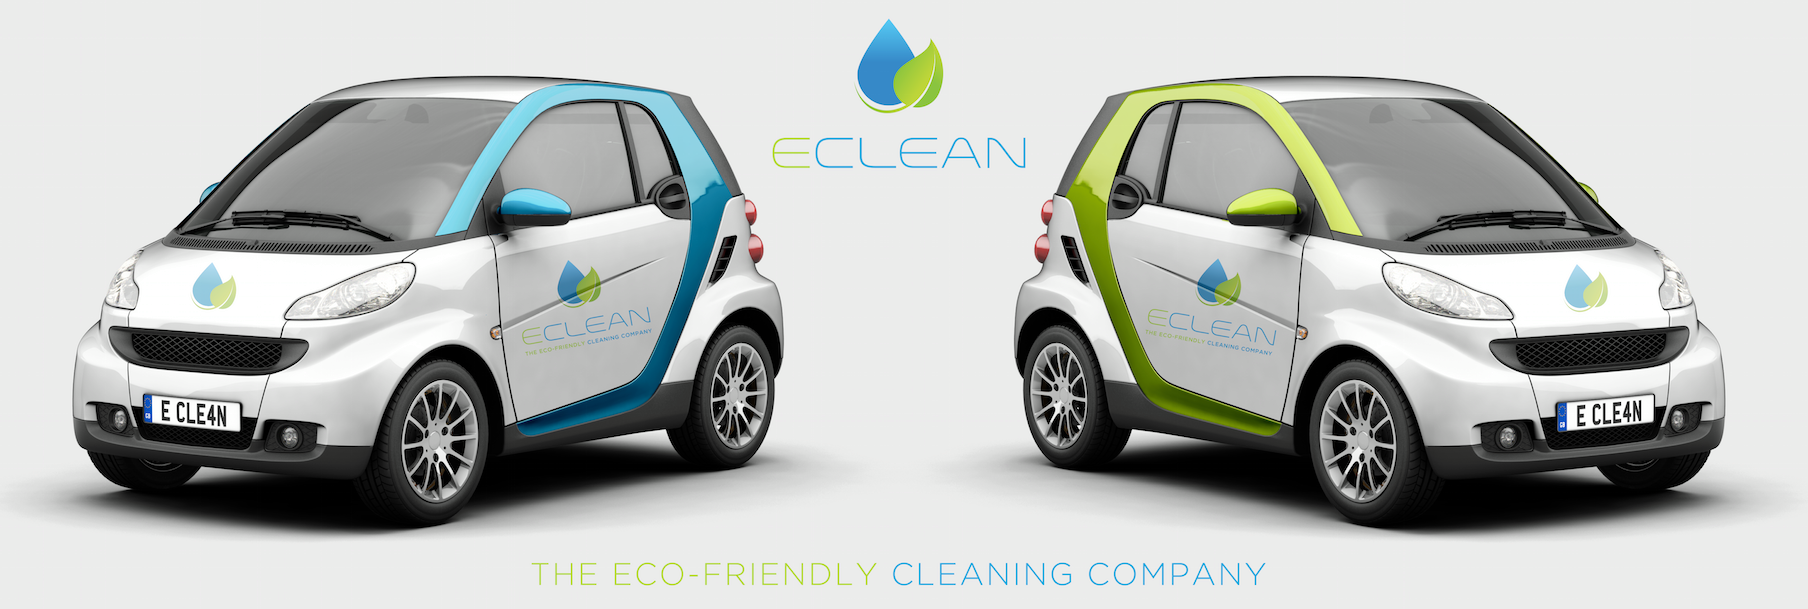 Car Hire Firms to Offer Eco-Friendly Vehicles in a Mission to Go Green